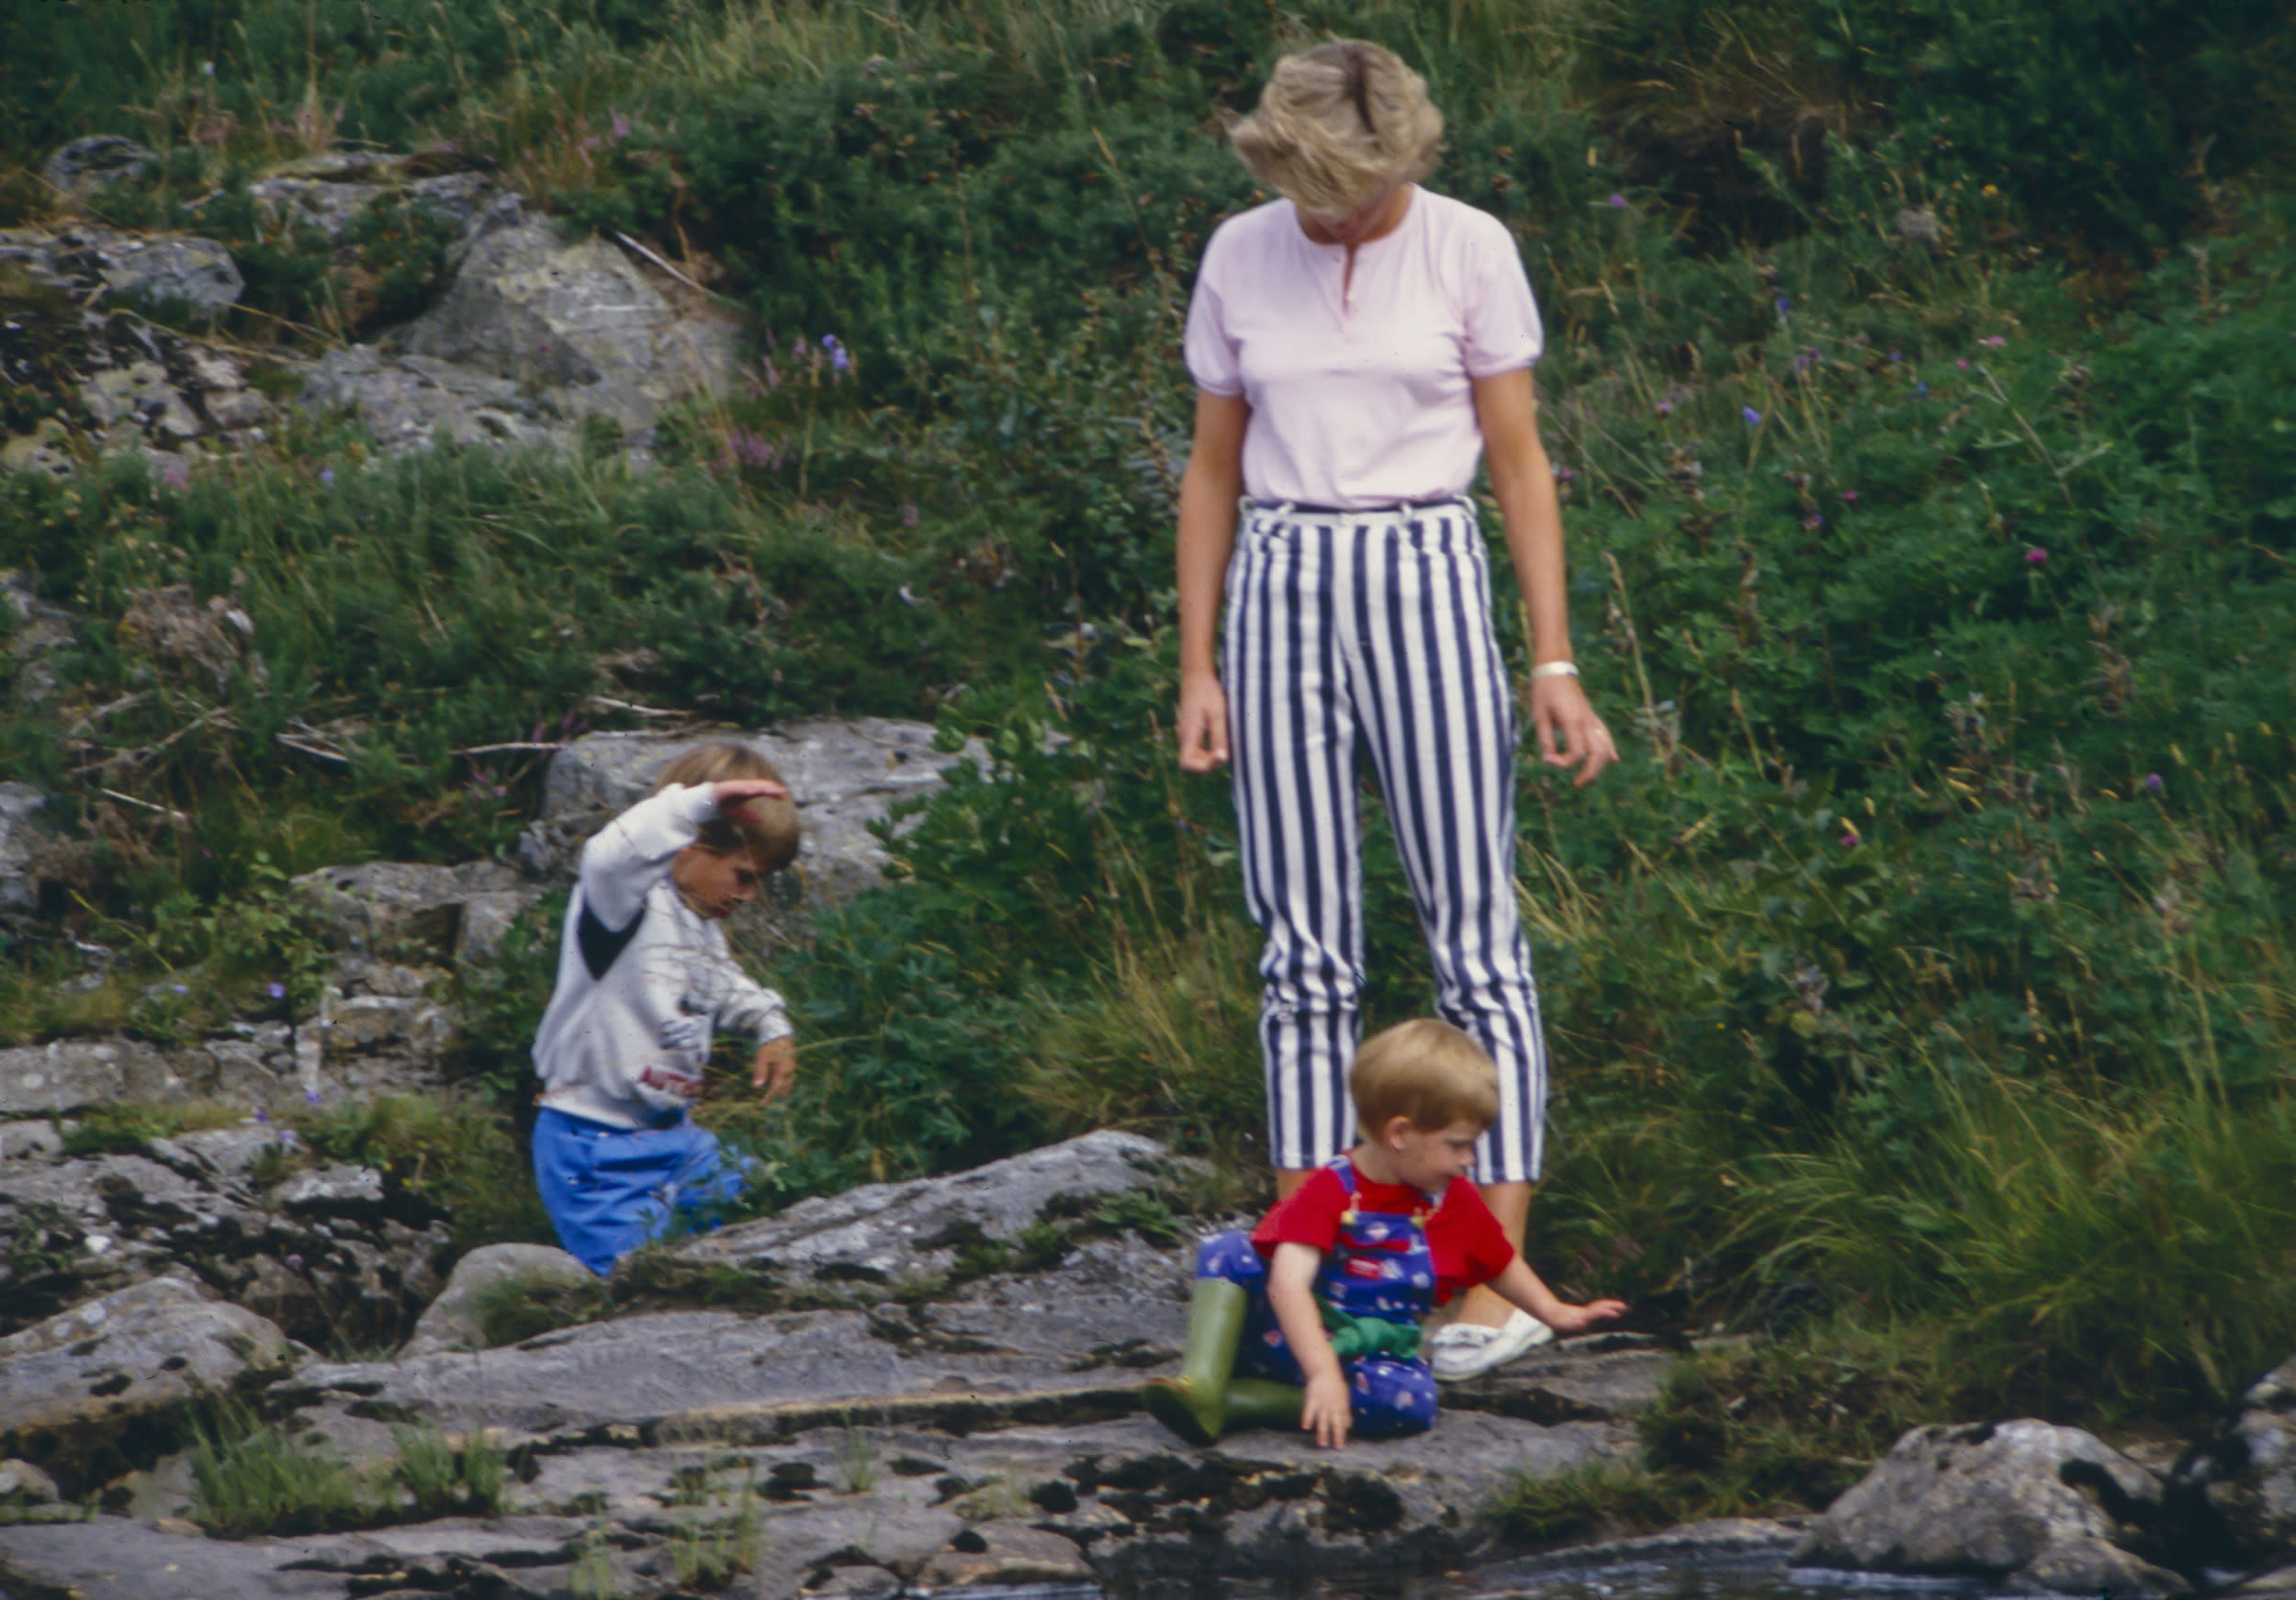 BALMORAL, SCOTLAND  -  AUGUST 18:   Diana, Princess of Wales, Prince William, and Prince Harry play on the banks of the River Dee, near Balmoral Castle.during a Summer vacation, on August 18, 1987, in Balmoral, Scotland. (Photo by Julian Parker/UK Press via Getty Images)